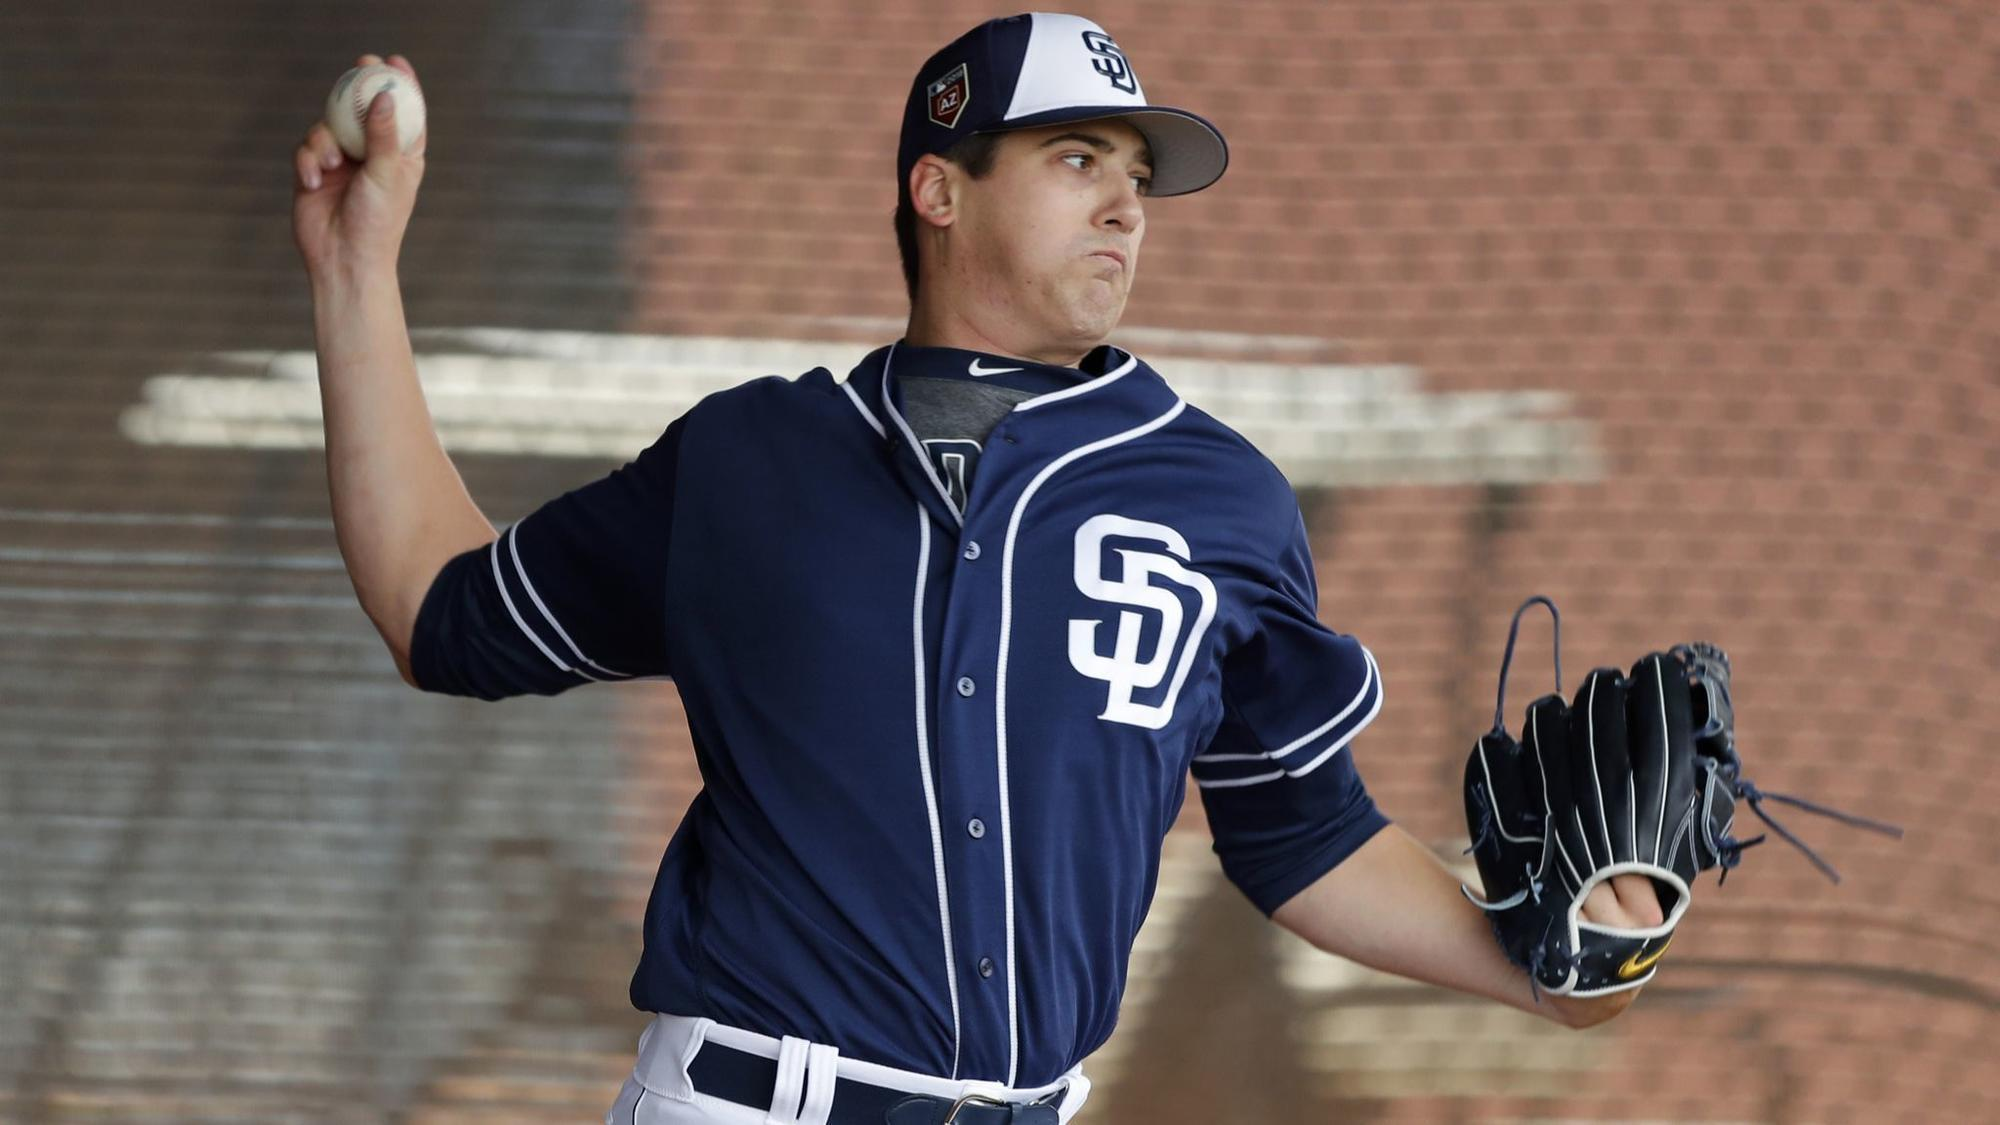 Cal Quantrill Earns First 18 Win With Missions The San